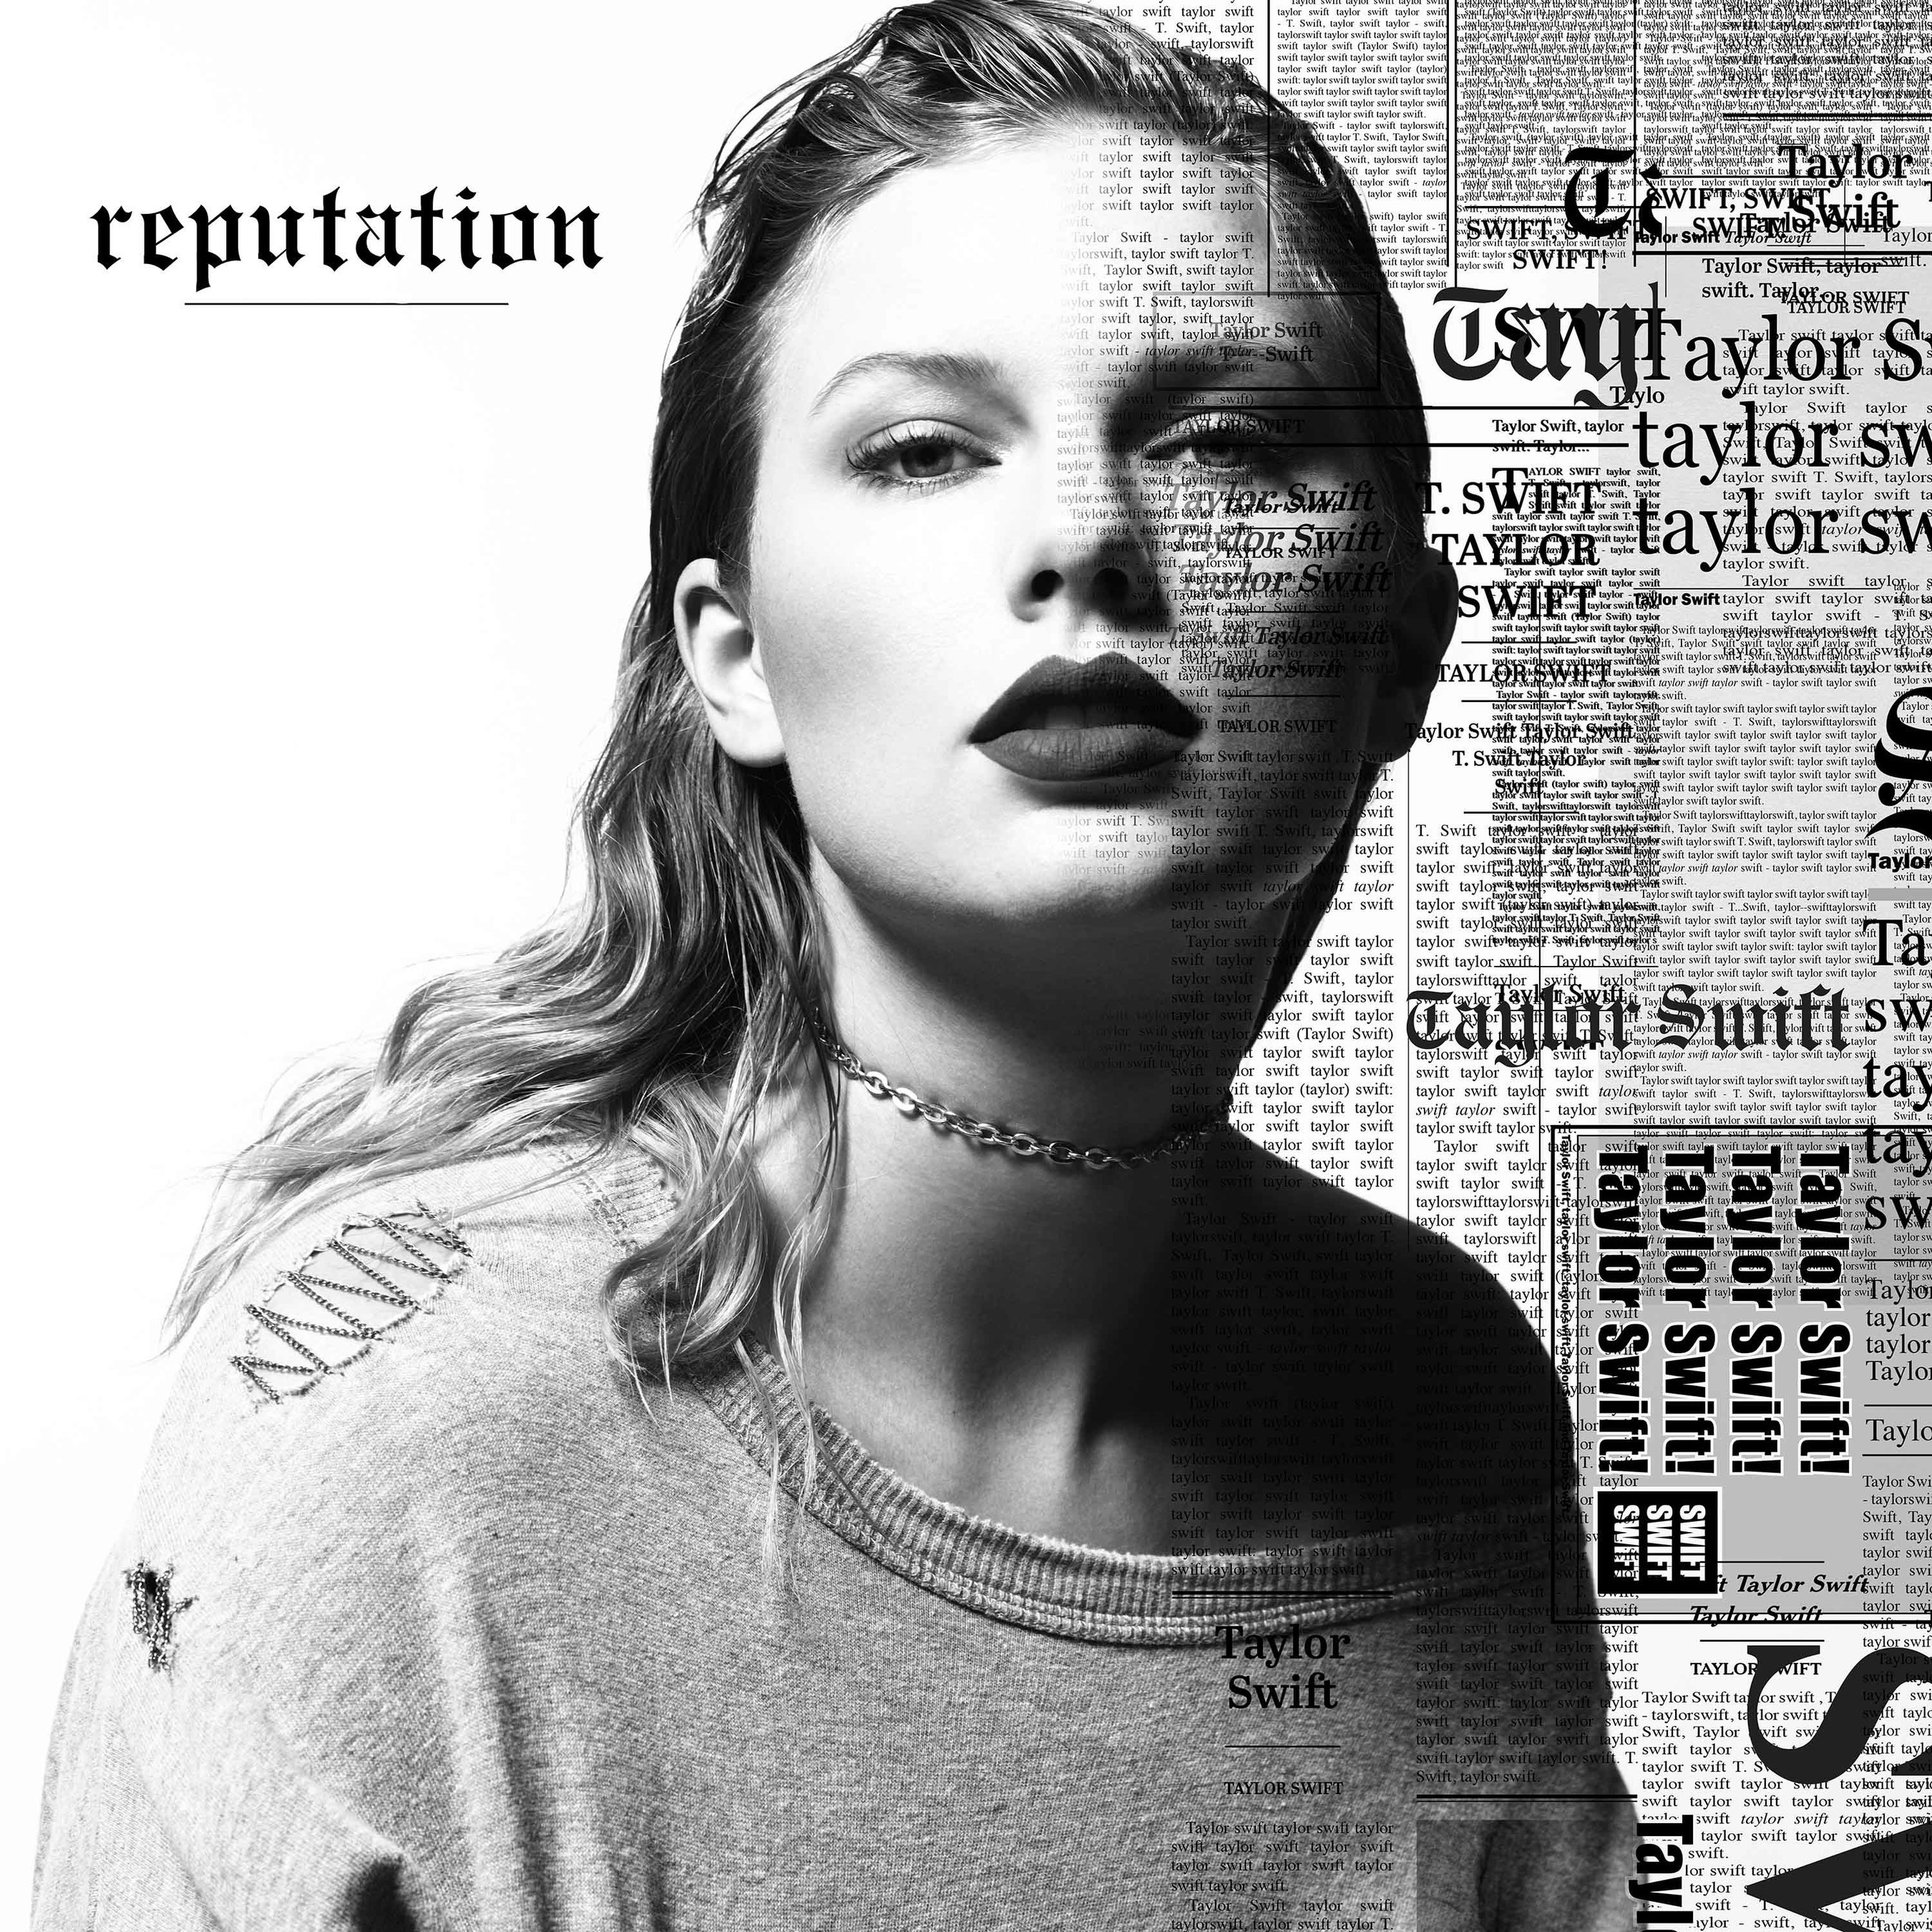 Taylor Swift's reputation Stadium Tour is Coming to Detroit!